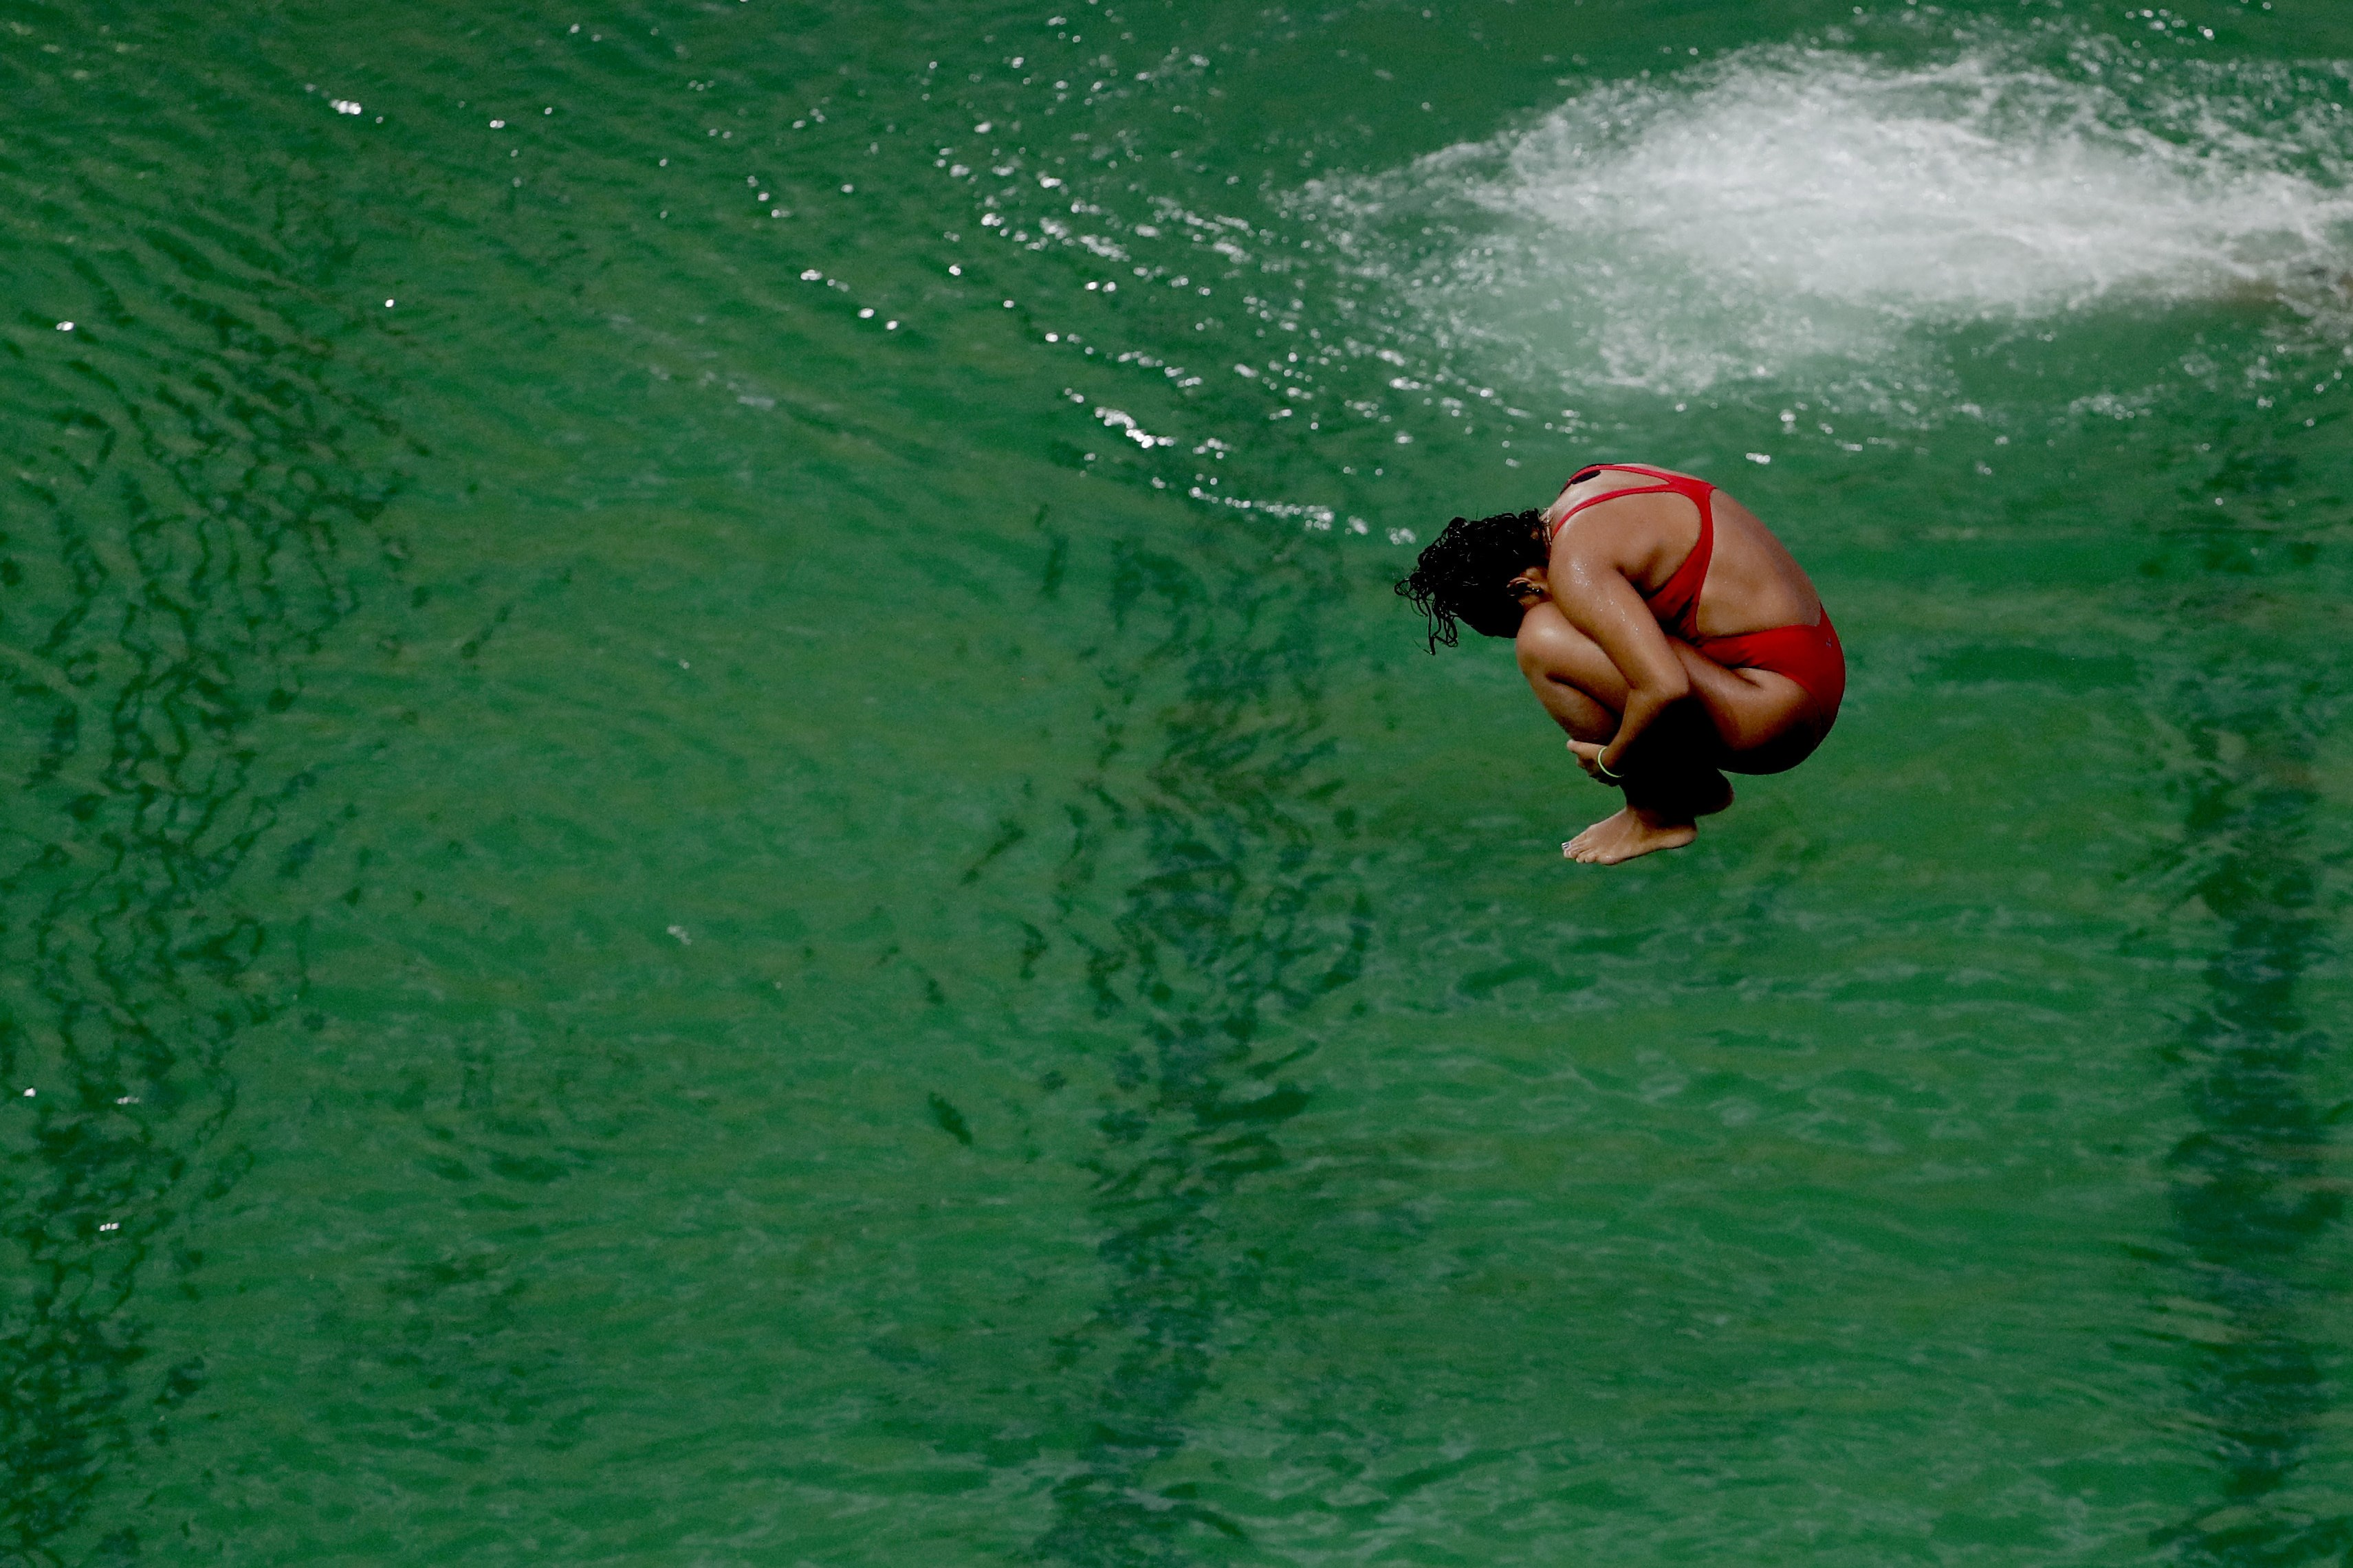 A diver takes part in a training session after the water in the diving pool turned green in the Maria Lenk Aquatic Center at the 2016 Summer Olympics in Rio de Janeiro, Brazil, Wednesday, Aug. 10, 2016. (AP Photo/Matt Dunham)